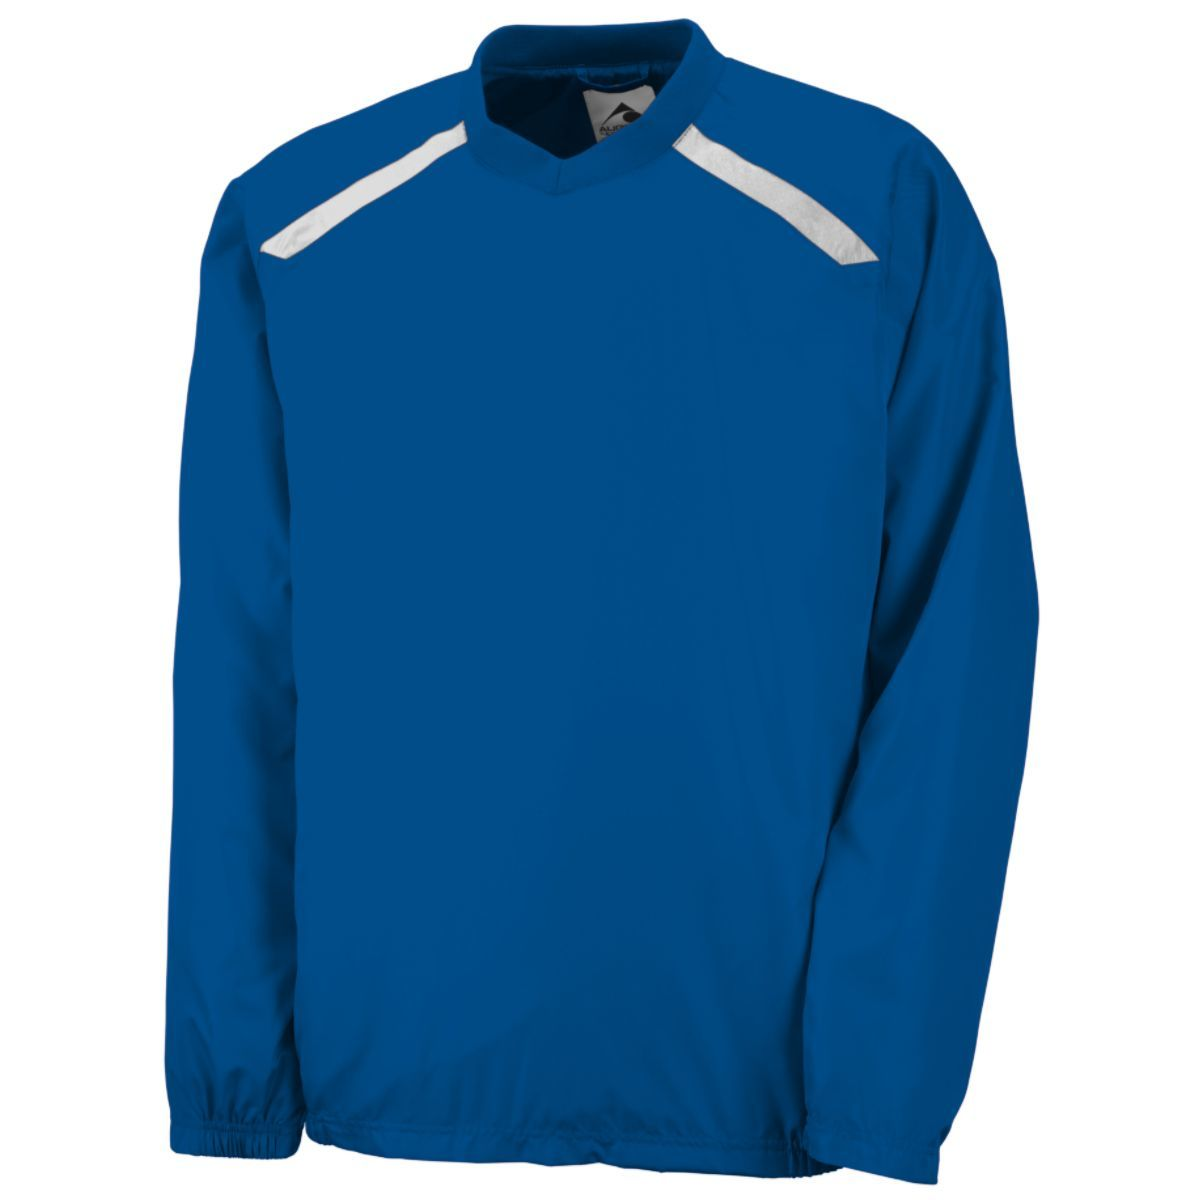 Promentum Pullover - ROYAL/WHITE